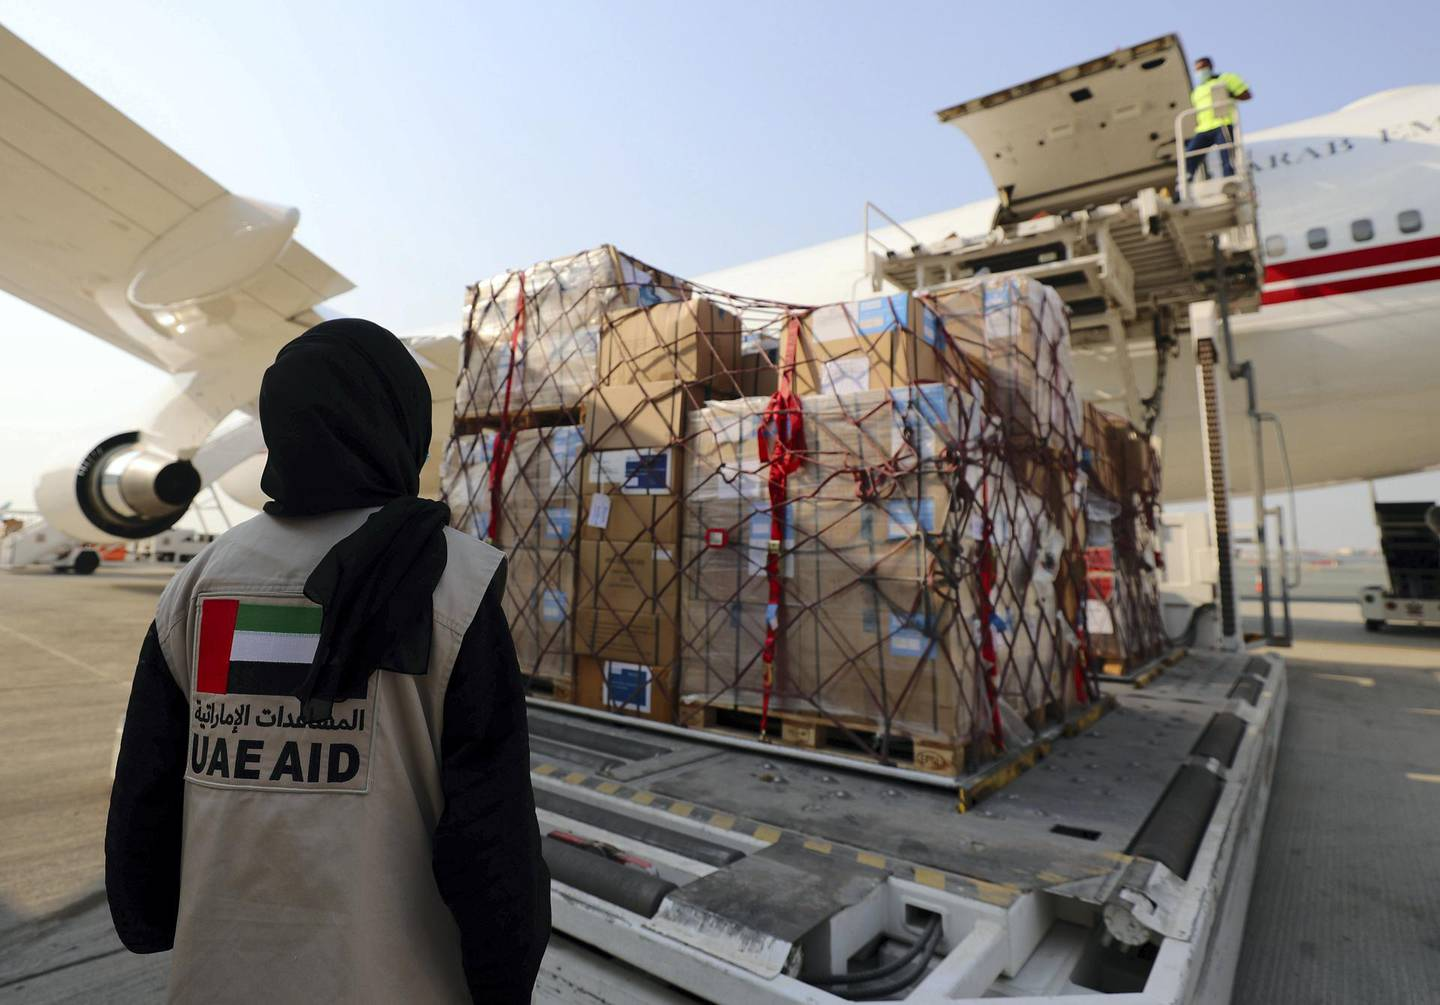 Dubai, United Arab Emirates - Reporter: Kelly Clarke. Aid is loaded up on a plane to Lebanon at Dubai airport to support Beirut after the explosion. Wednesday, August 5th, 2020. Dubai. Chris Whiteoak / The National